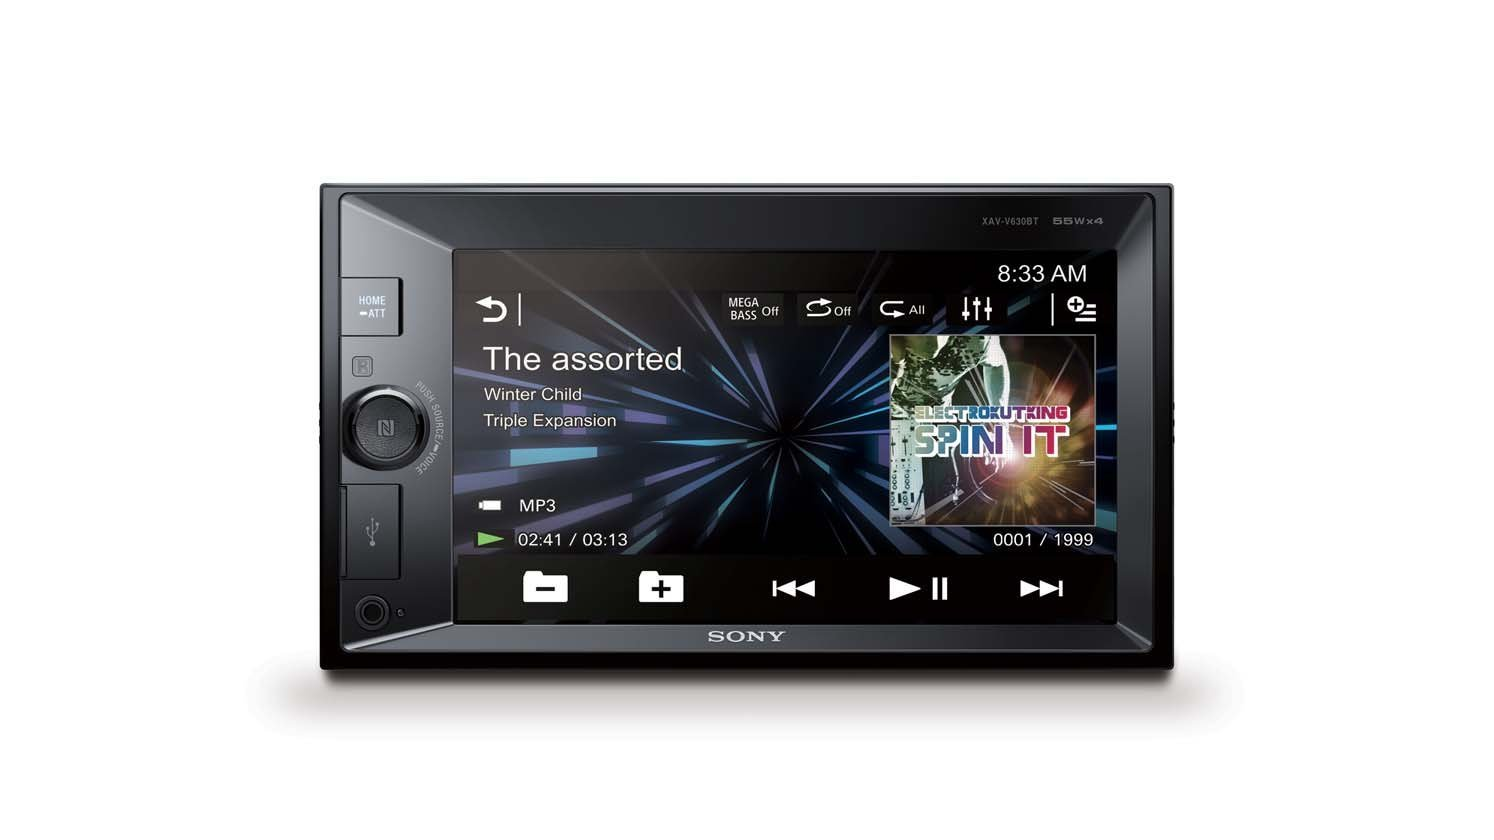 Sony autorádio XAV-V630BT multimediální, dot. display, XVid/MP3, USB/AUX, BT/NFC